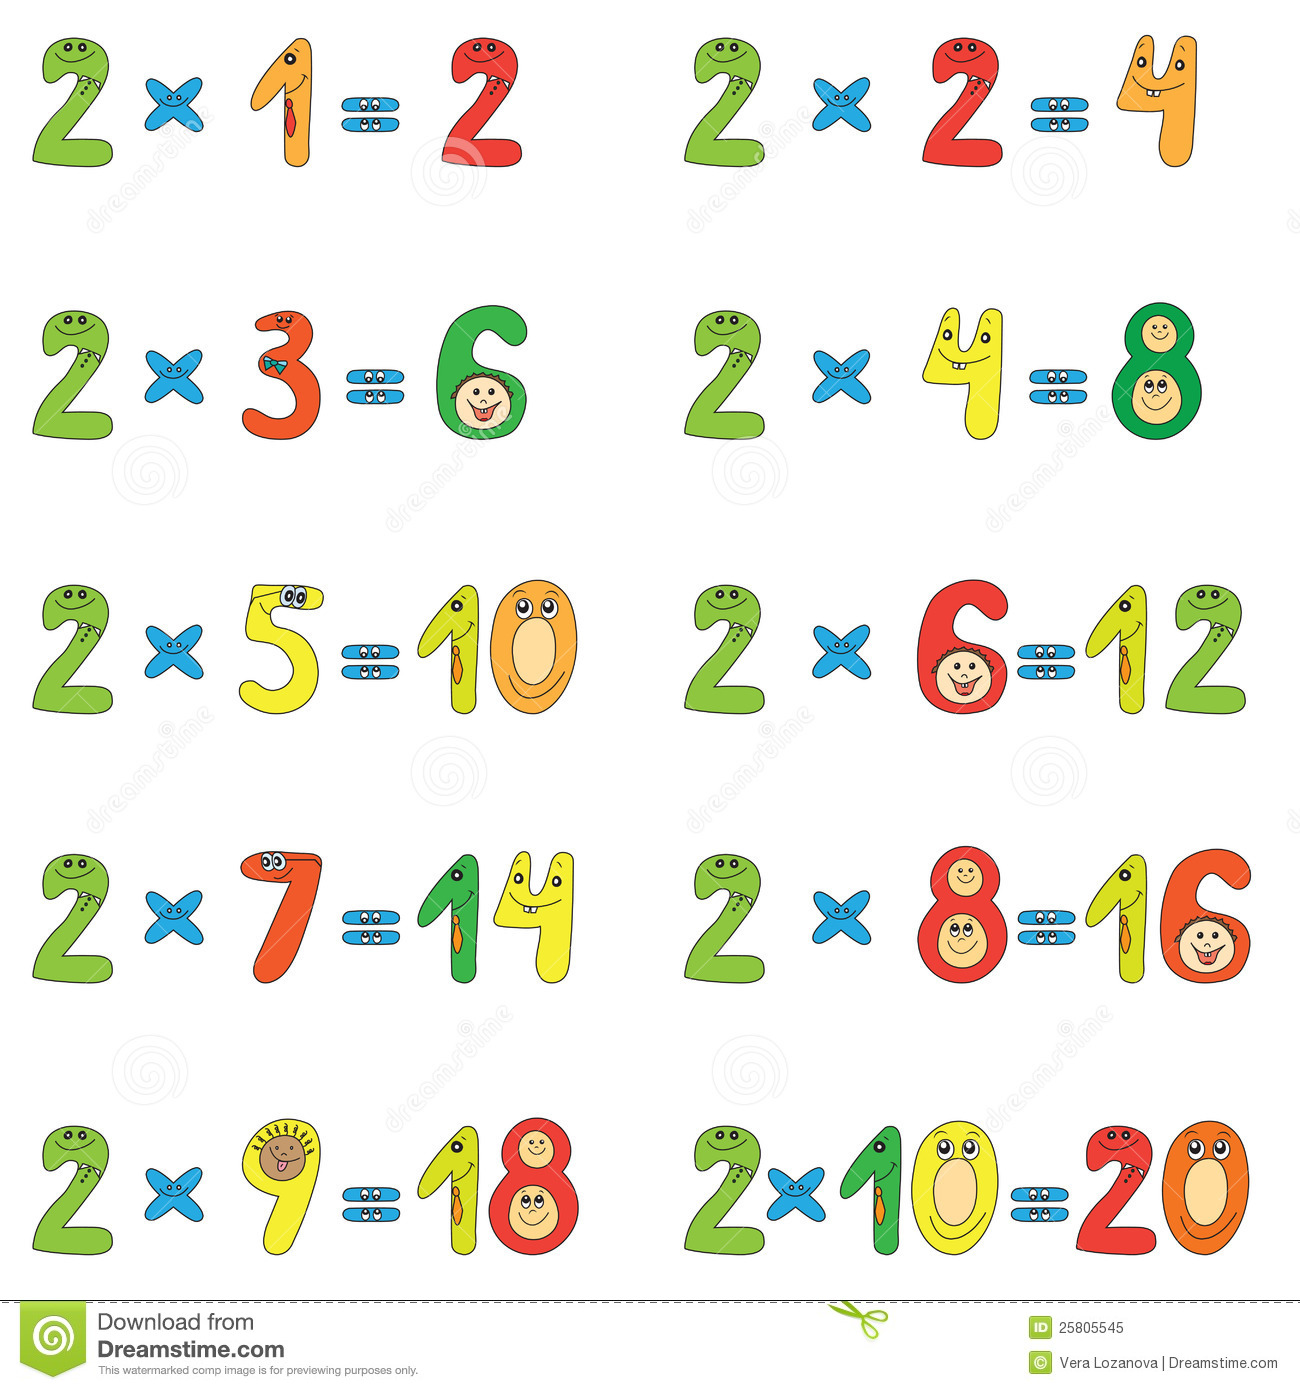 Exercice multiplication table 2 3 4 5 fiches d exercices for Table de multiplication de 2 a 9